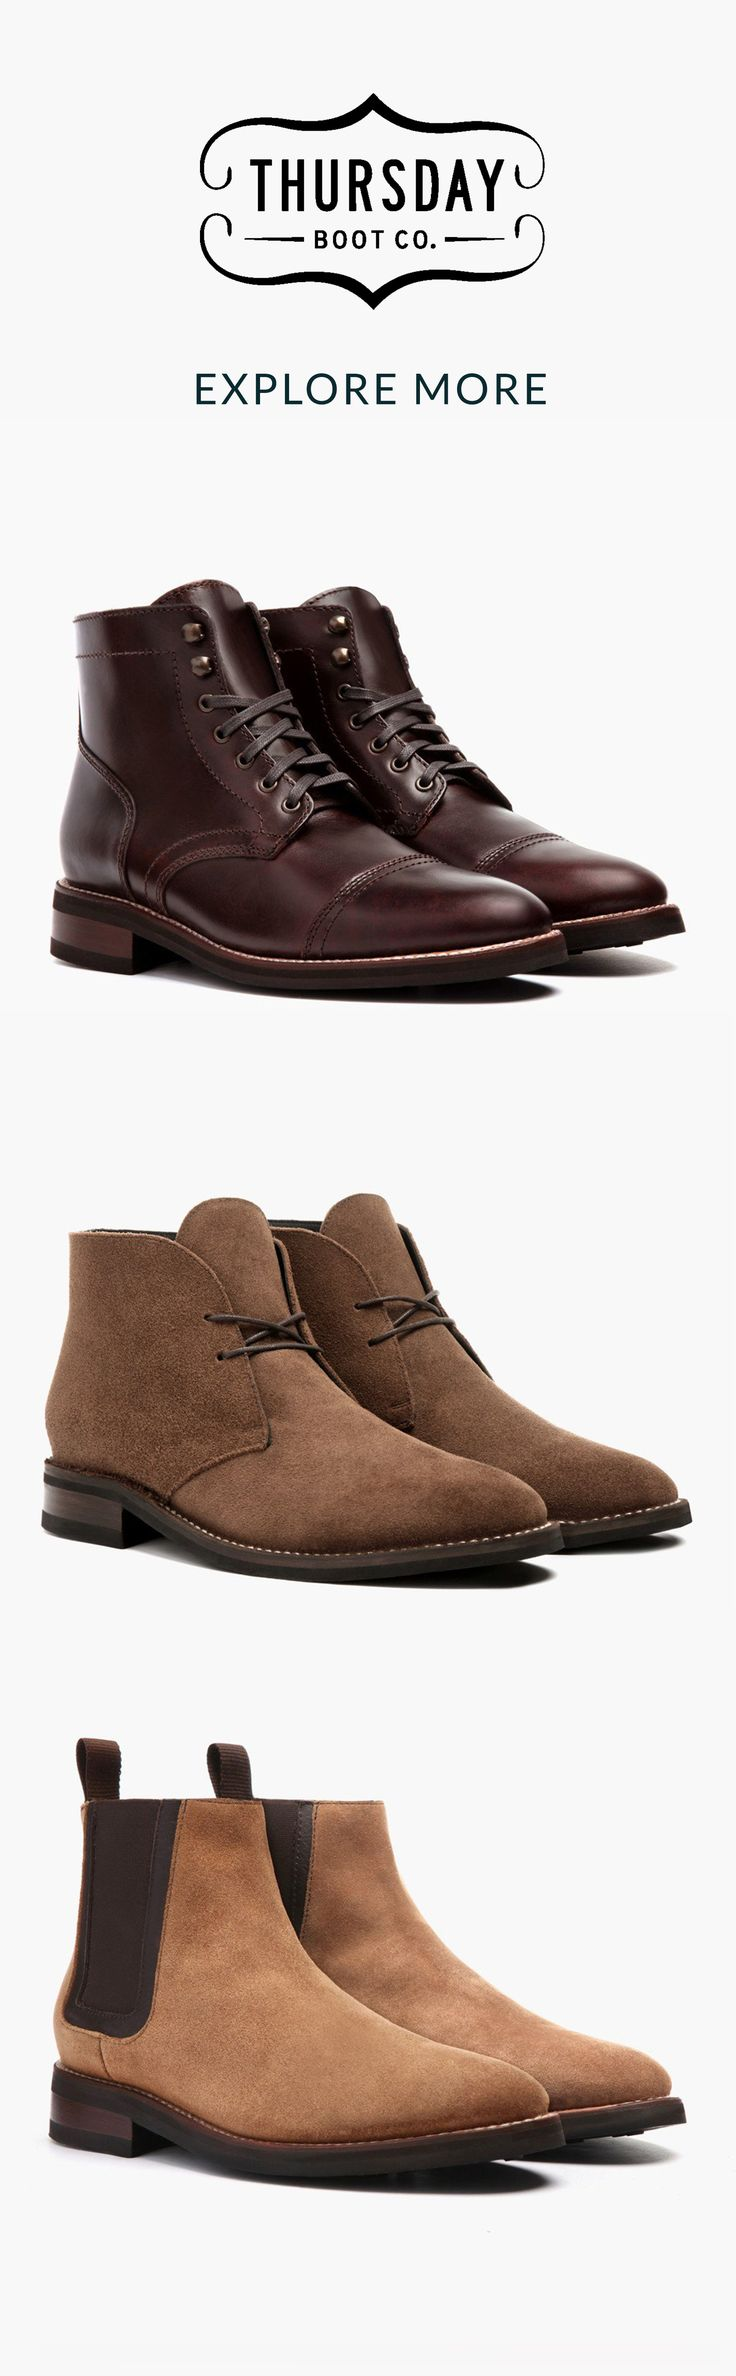 Explore the latest styles at thursdayboots.com. 3,000+ 5-Star Reviews · Easy & Secure Checkout · Free Shipping & Returns